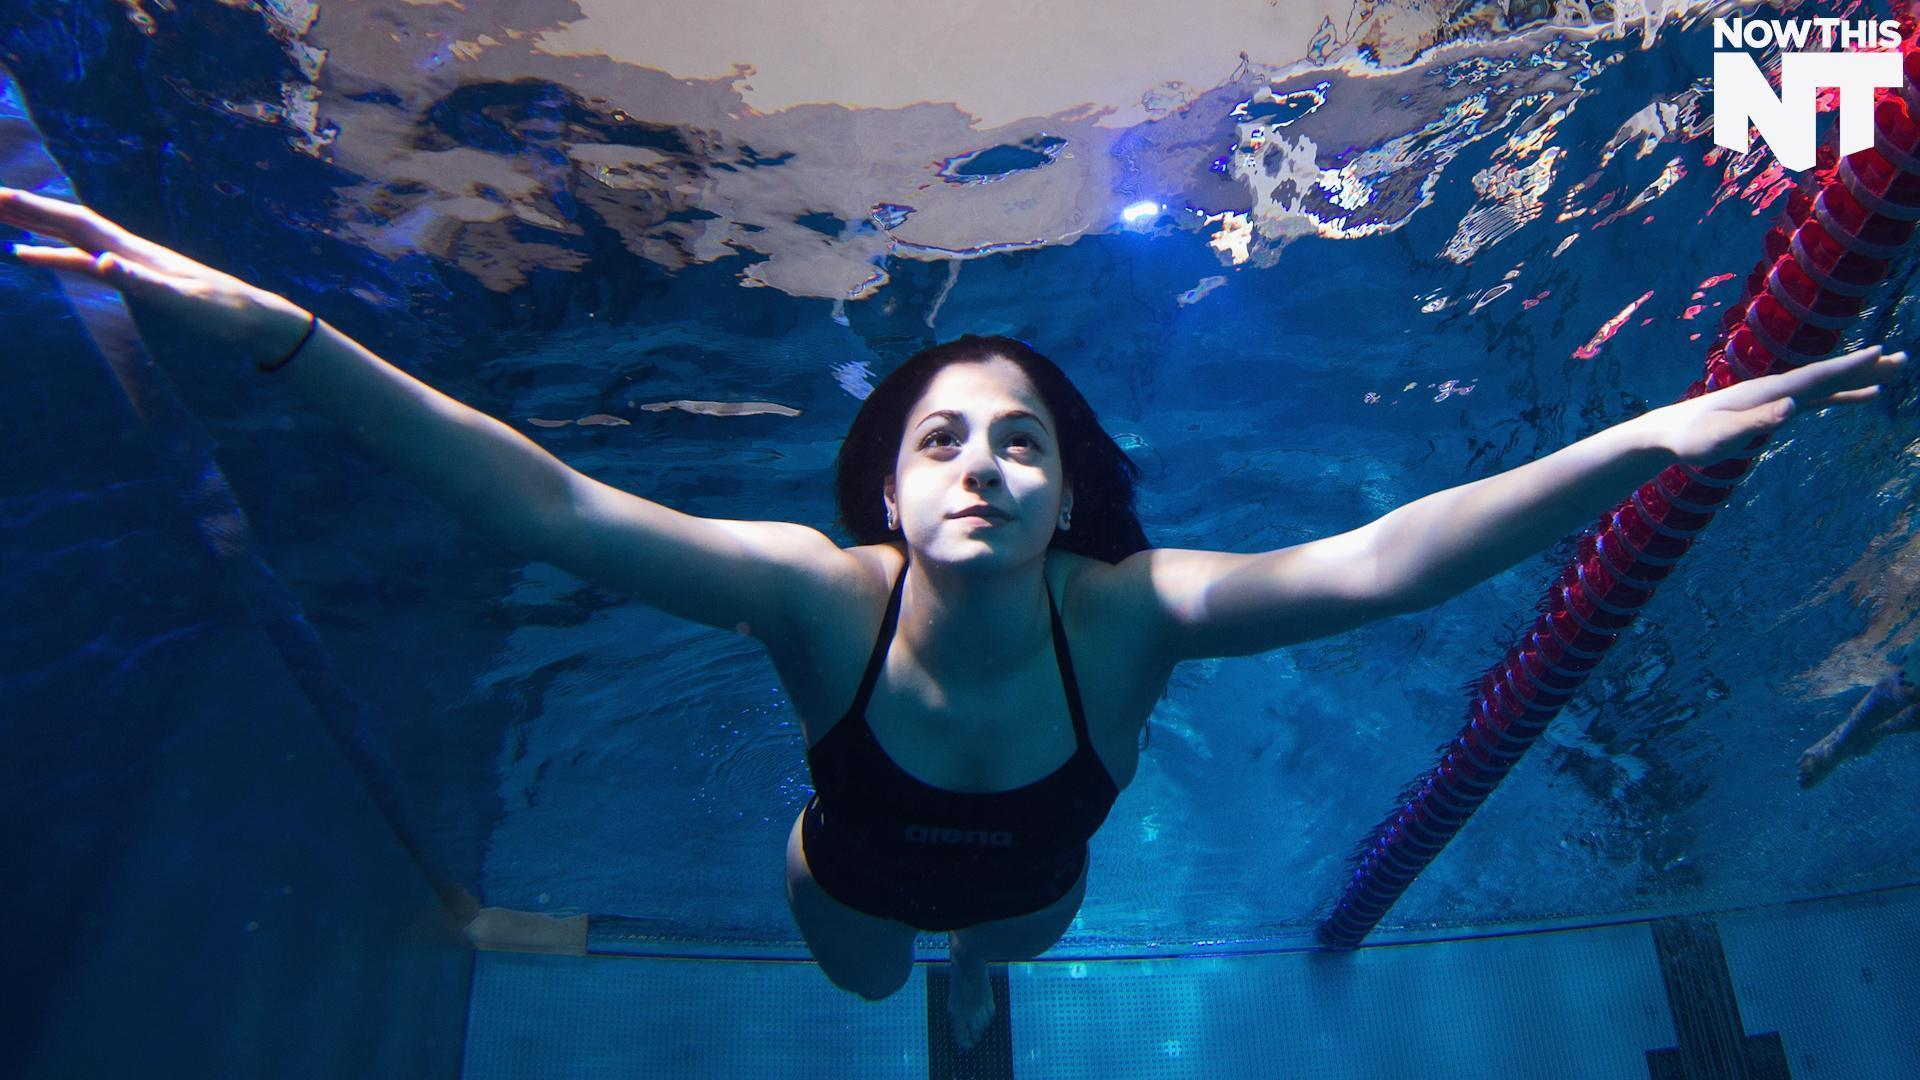 Syrian Swimmer And Olympic Hopeful Saved Boat Of 20 Refugees